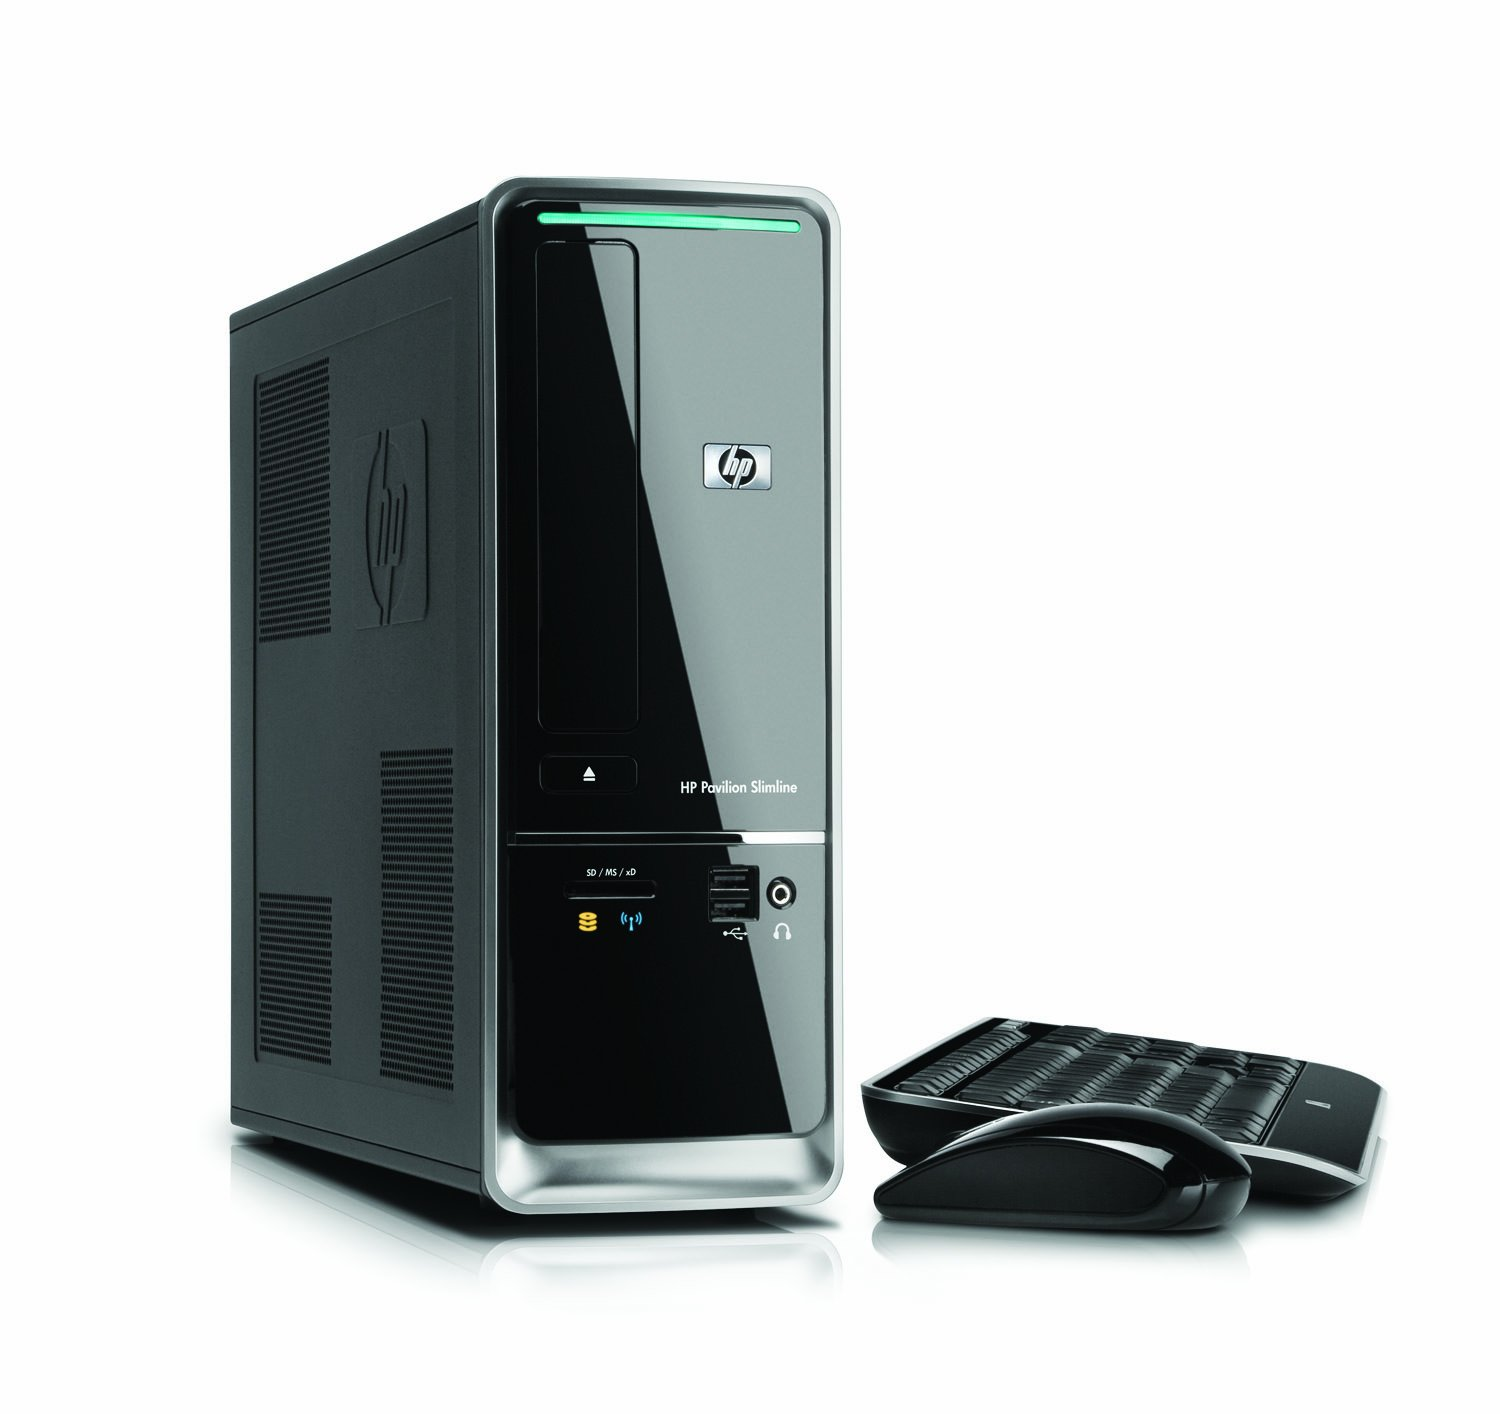 Amazon.com: HP Pavilion Slimline - s5710f PC (Black) (Discontinued by  Manufacturer): Computers & Accessories